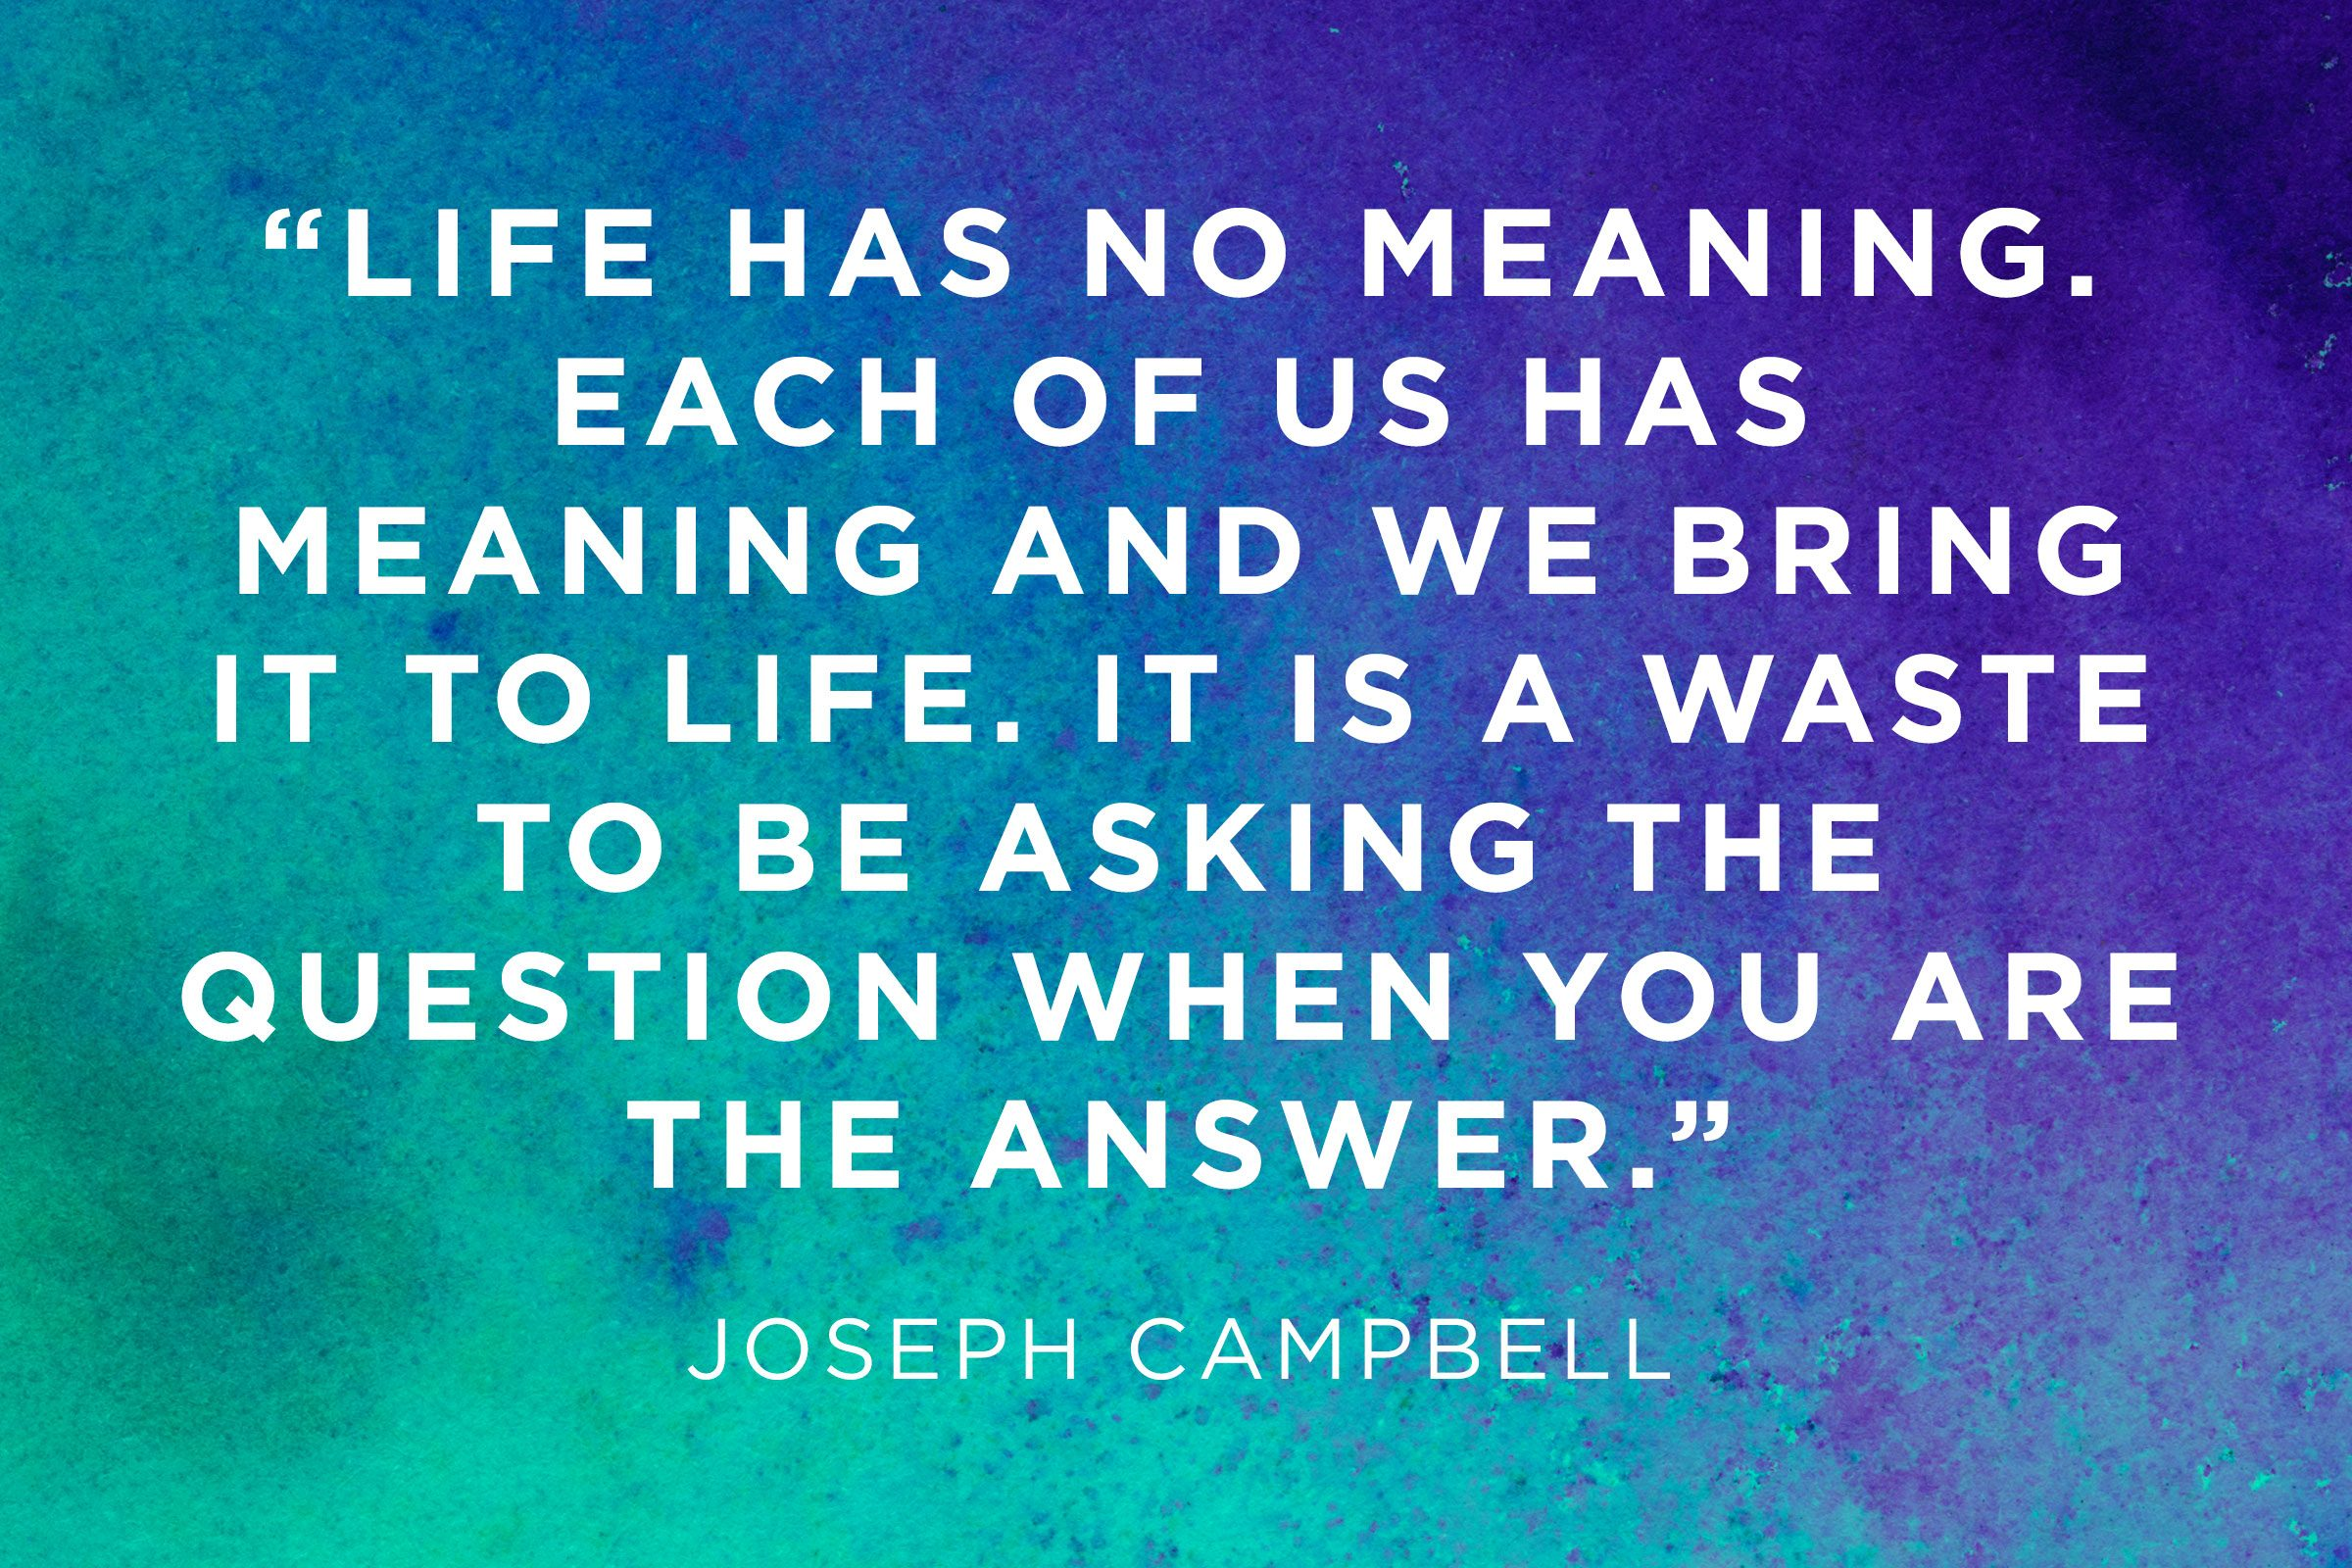 Meaning of Life Quotes: 12 Moving Answers | Reader's Digest